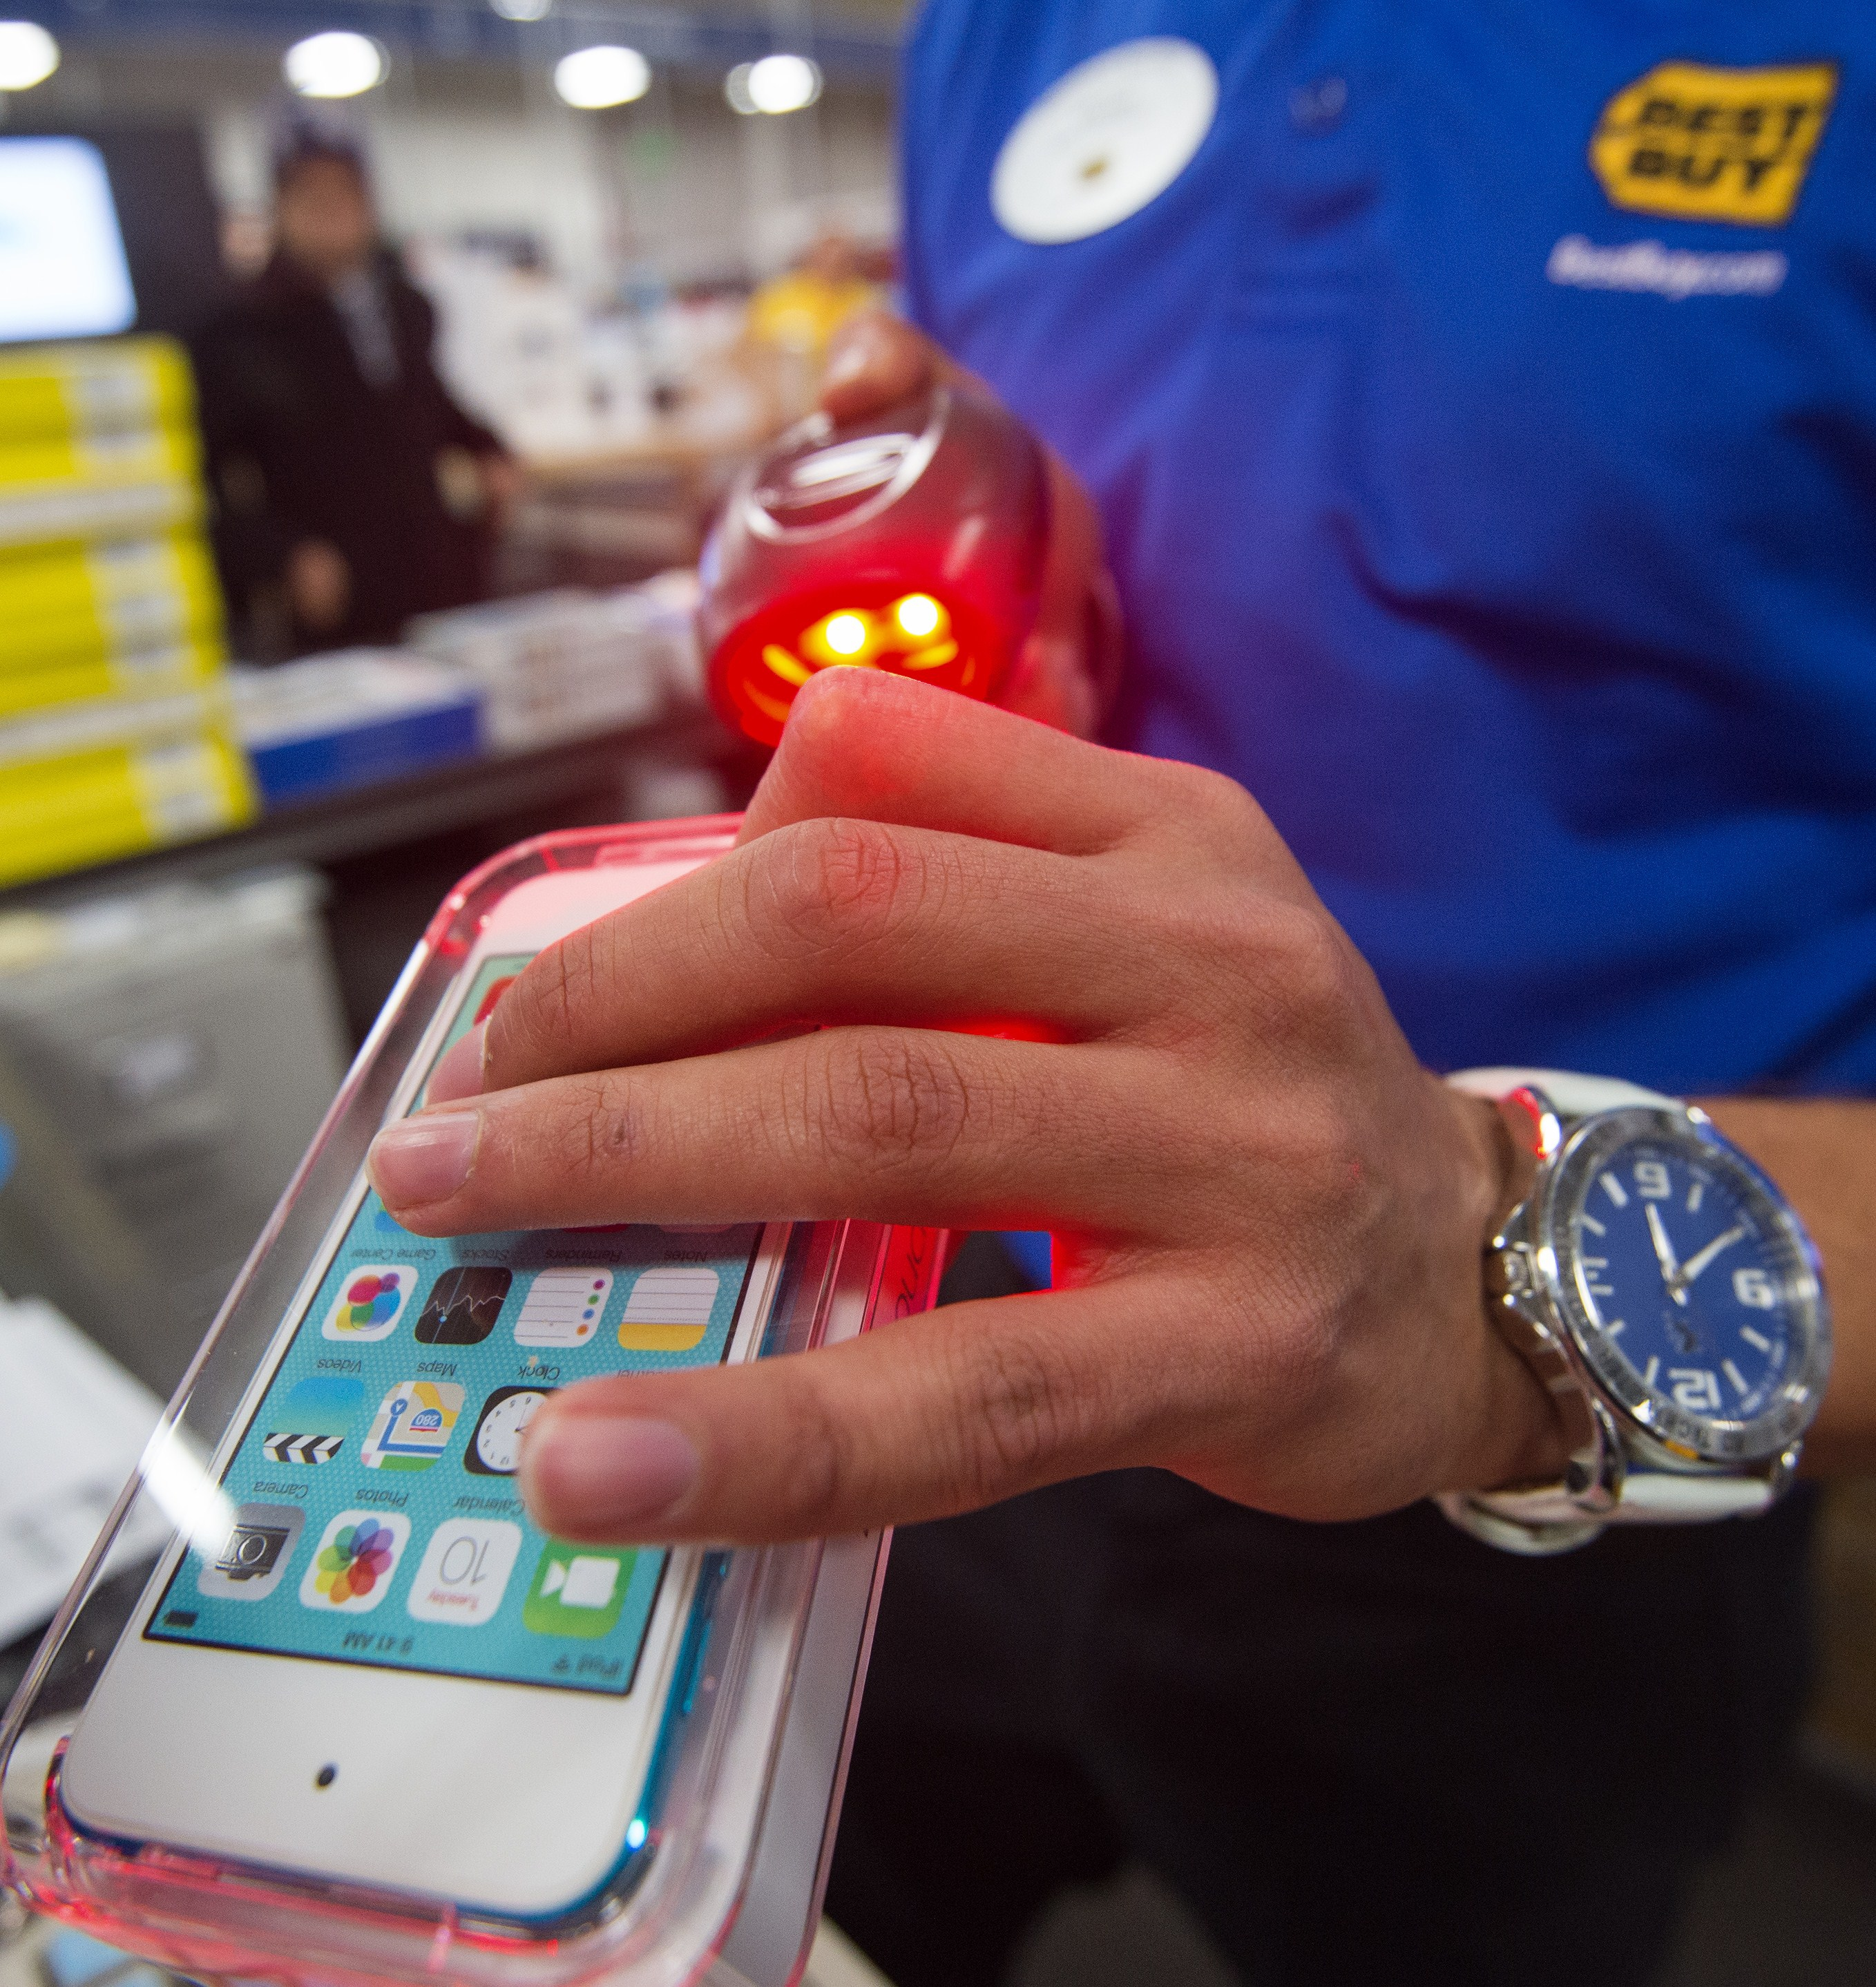 A salesperson scans an iPod Touch at the Best Buy store in Fairfax, Virginia on Nov. 27, 2014.